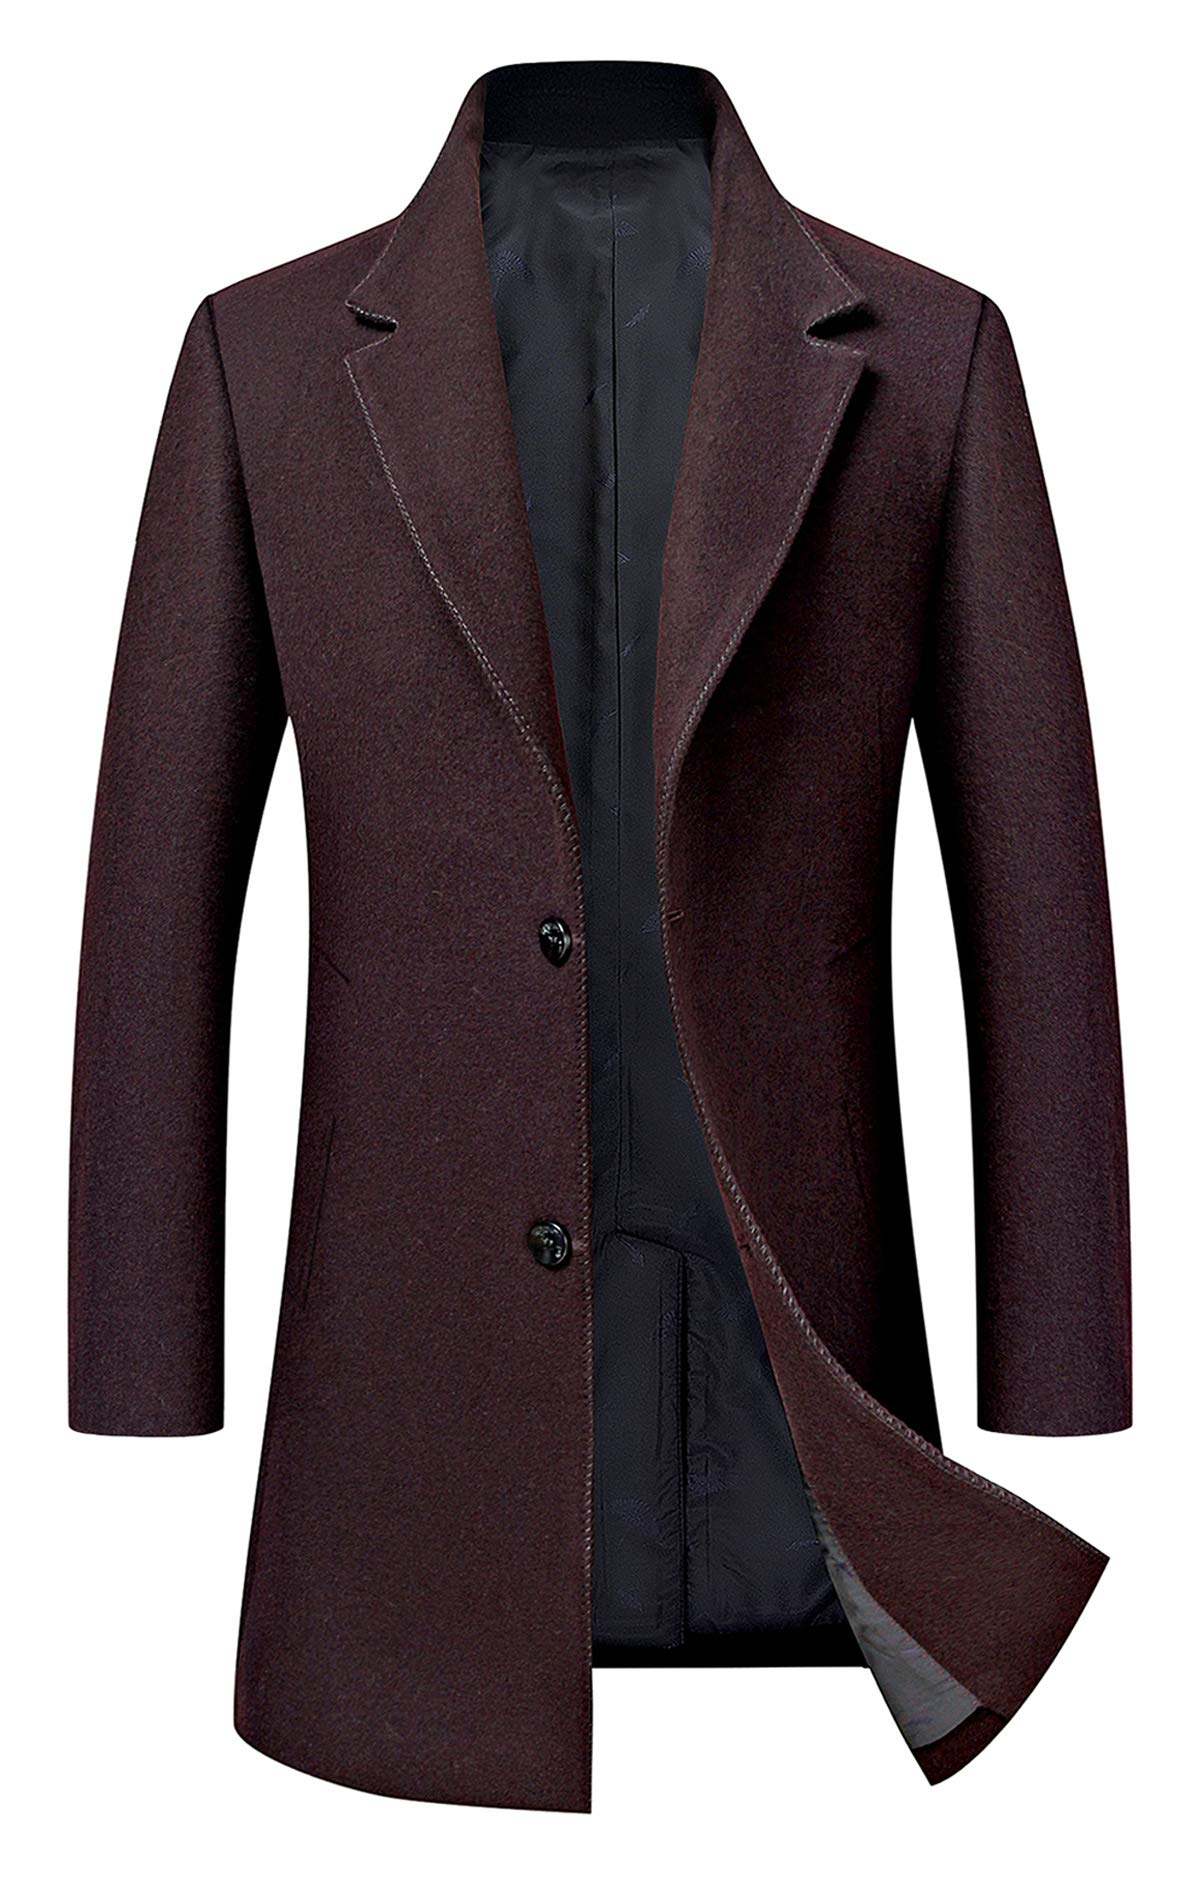 Men's Trench Coat Wool Blend Slim Fit Jacket Single Breasted Business Top Coat 18577 Wine Red S by ELETOP